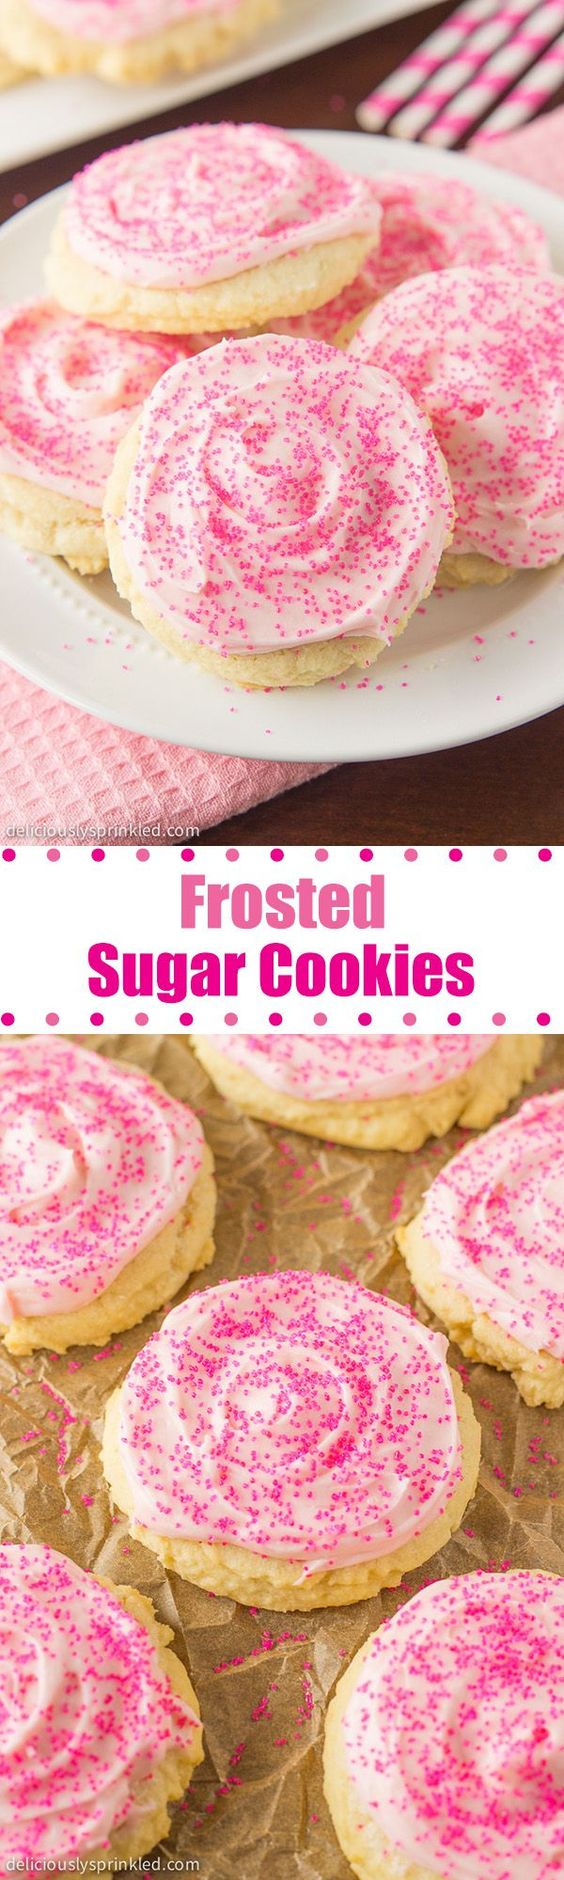 THE BEST FROSTED SUGAR COOKIES RECIPE